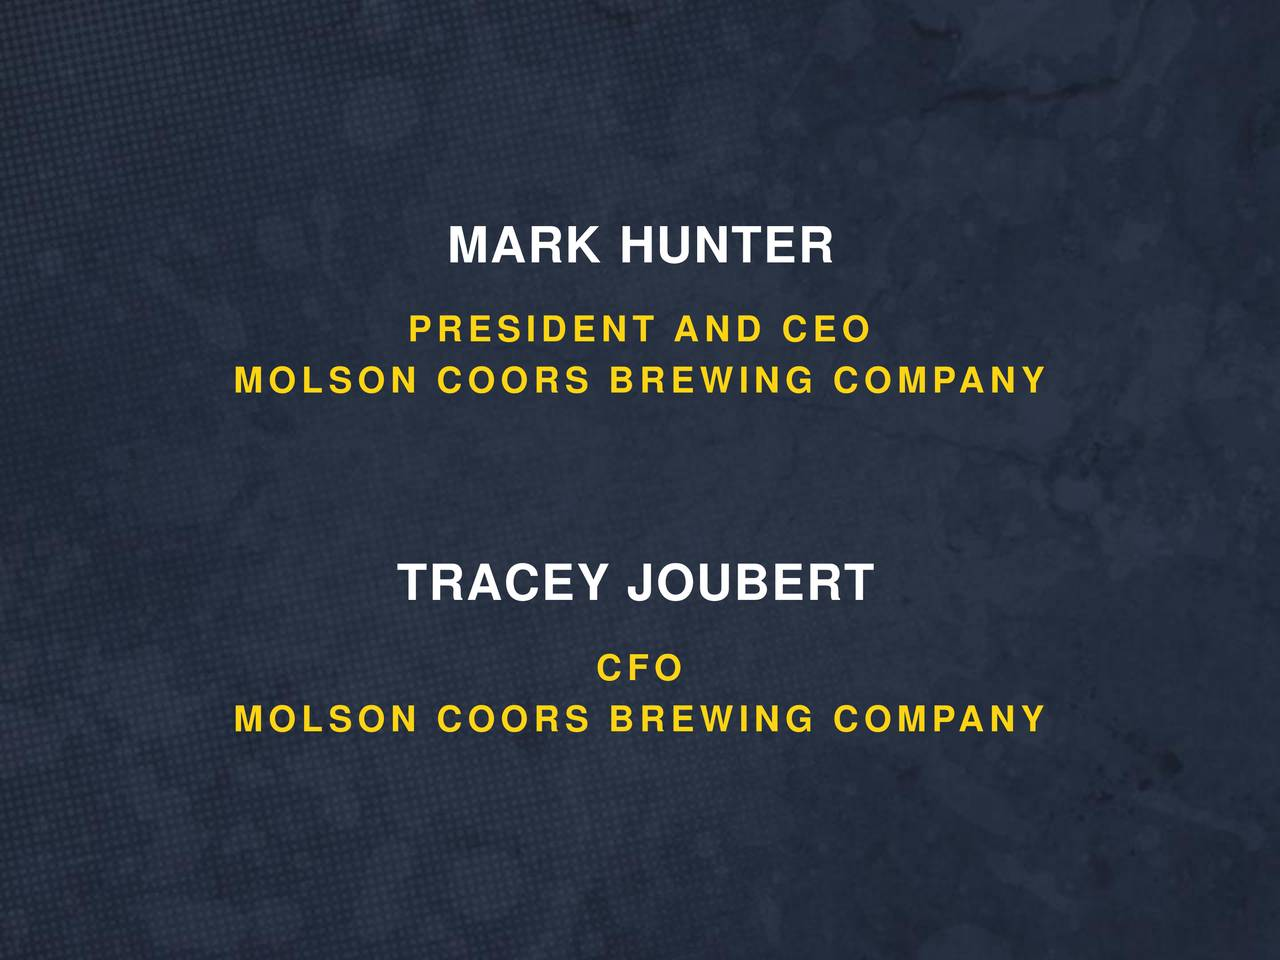 PRESIDENT AND CEO MOLSON COORS BREWING COMPANY TRACEY JOUBERT CFO MOLSON COORS BREWING COMPANY